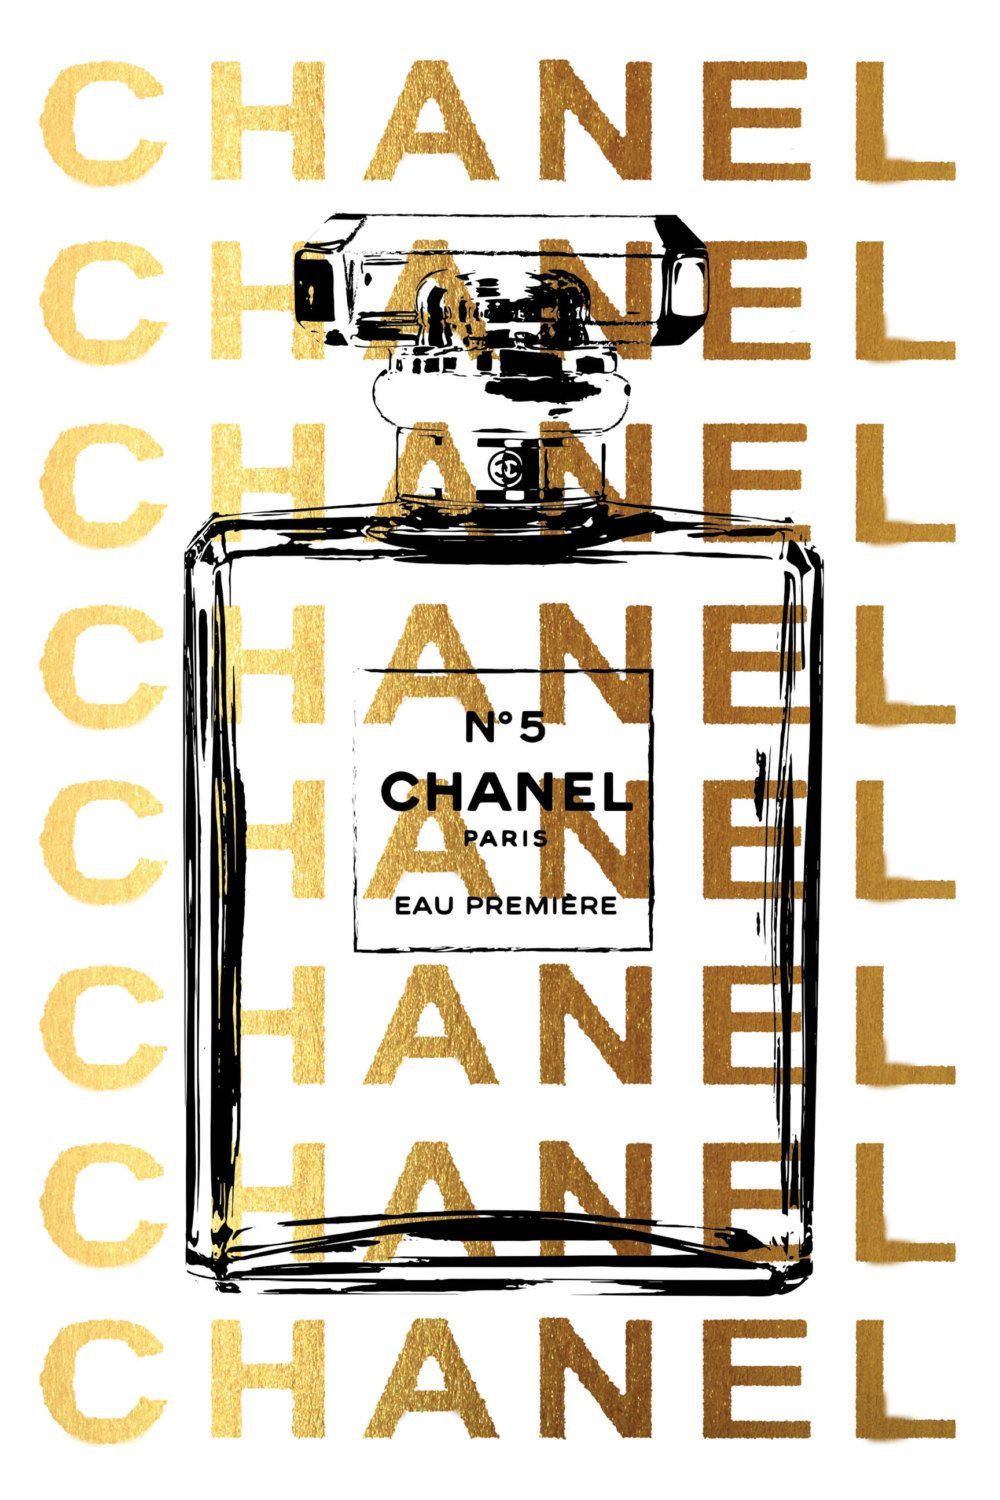 chanel perfume bottle vase of unique chanel perfume wall art kunuzmetals com for fashion perfume with peonies orchids watercolor 24 36 inches mounted related to chanel perfume wall